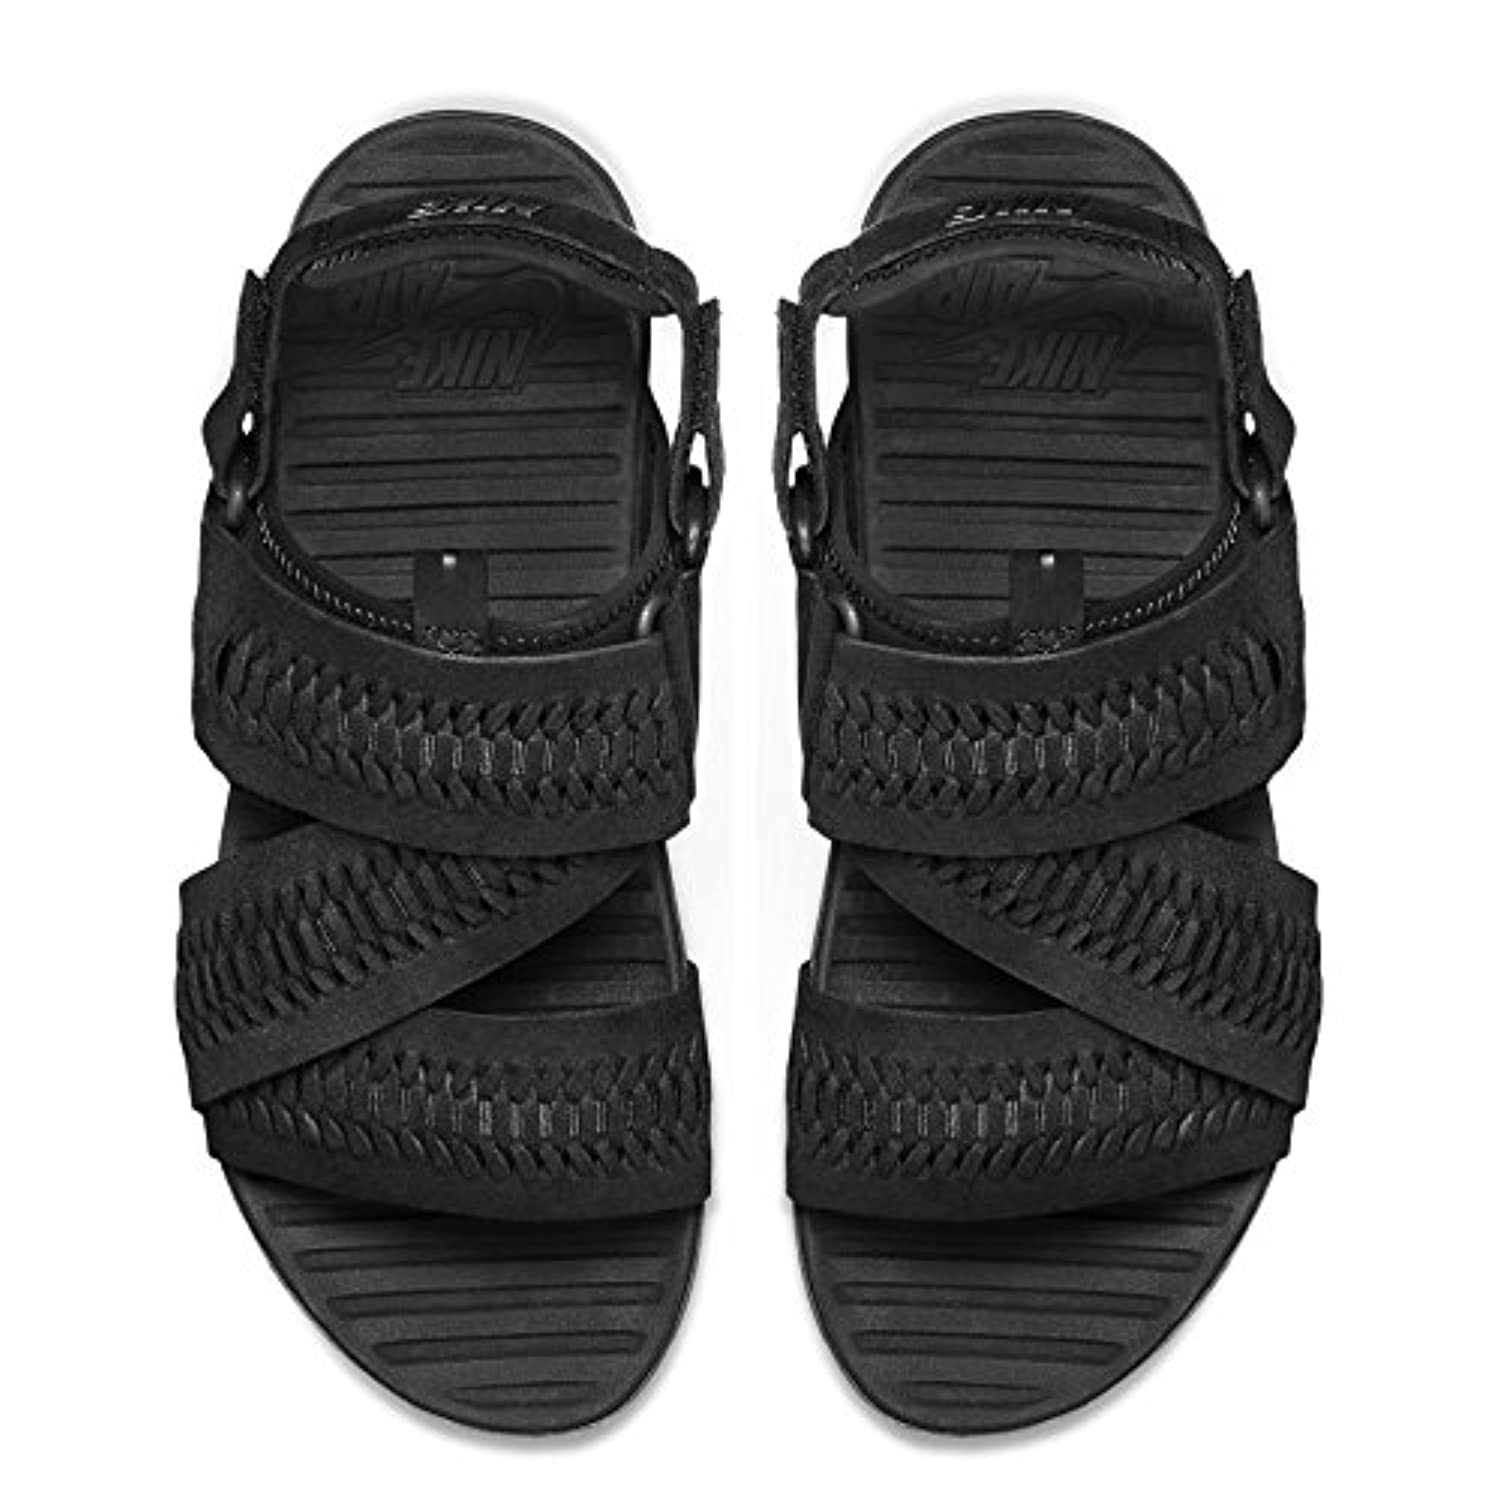 34620f465930 ... Nike NikeLab Air Solarsoft Zigzag WVN SP ACG 776444-001 Black Woven  Sandals Size 9 ...